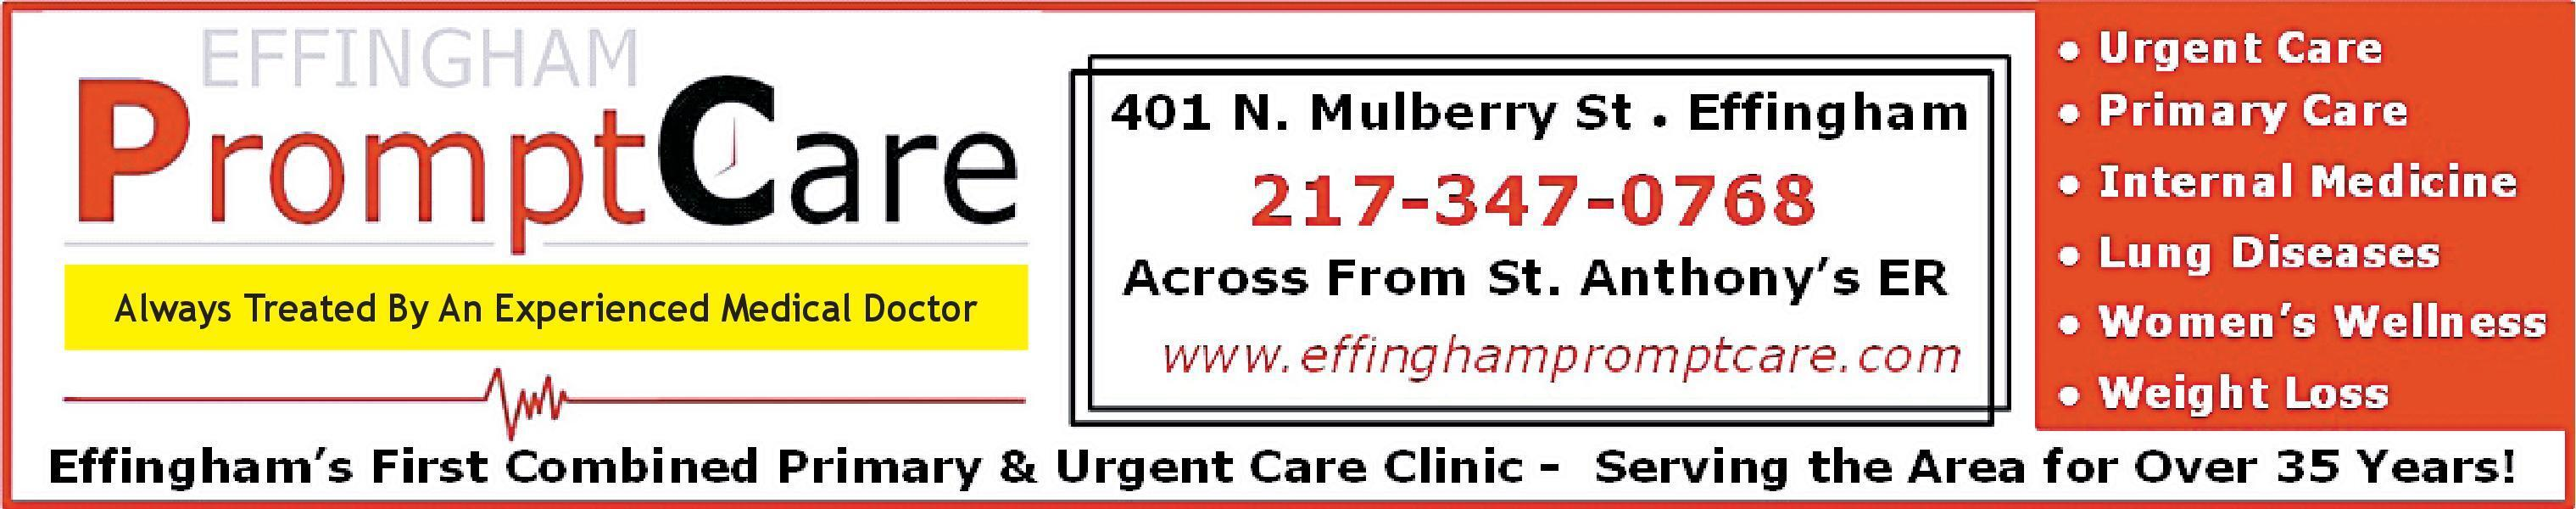 Effingham Daily News Newspaper Ads Classifieds Medical